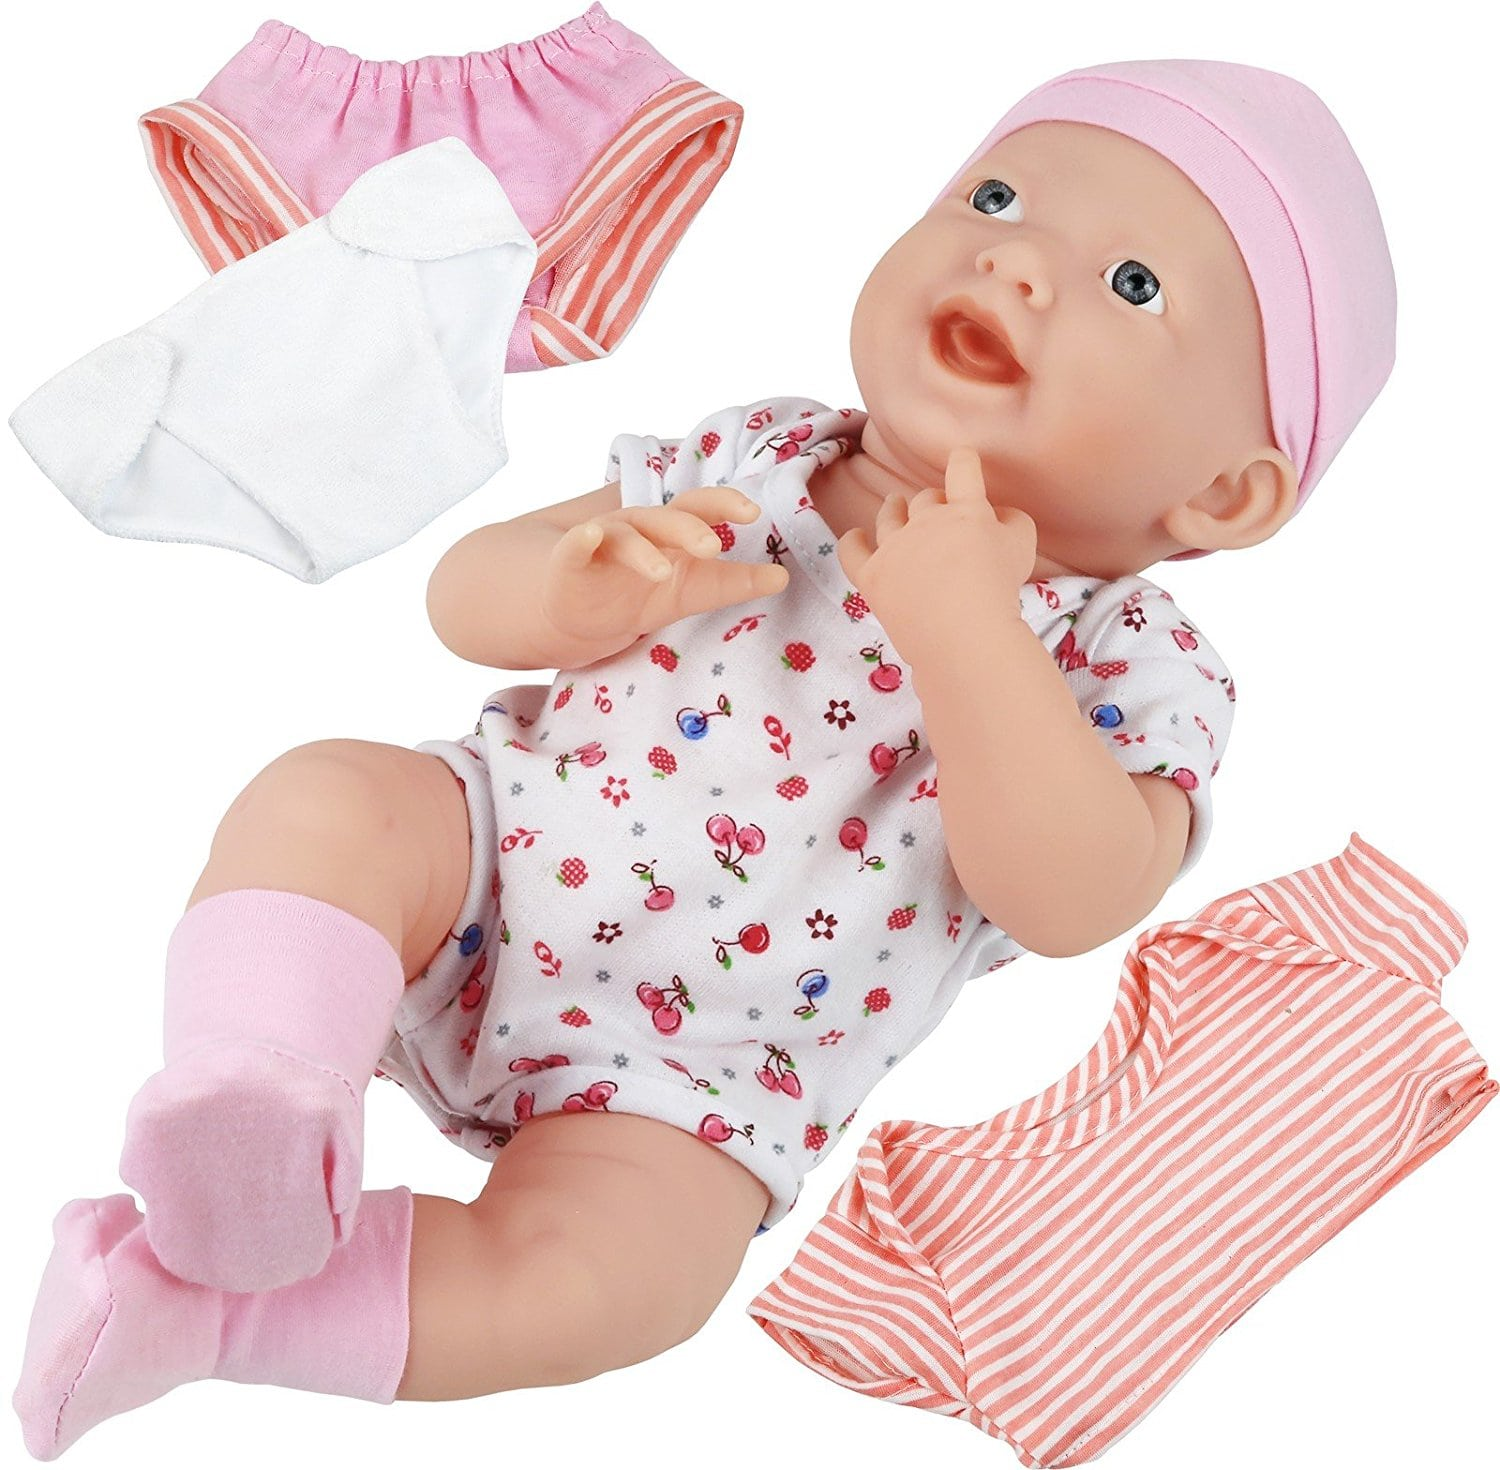 "35 Best Baby Dolls for Toddlers img draggable=""false"" class=""emoji"